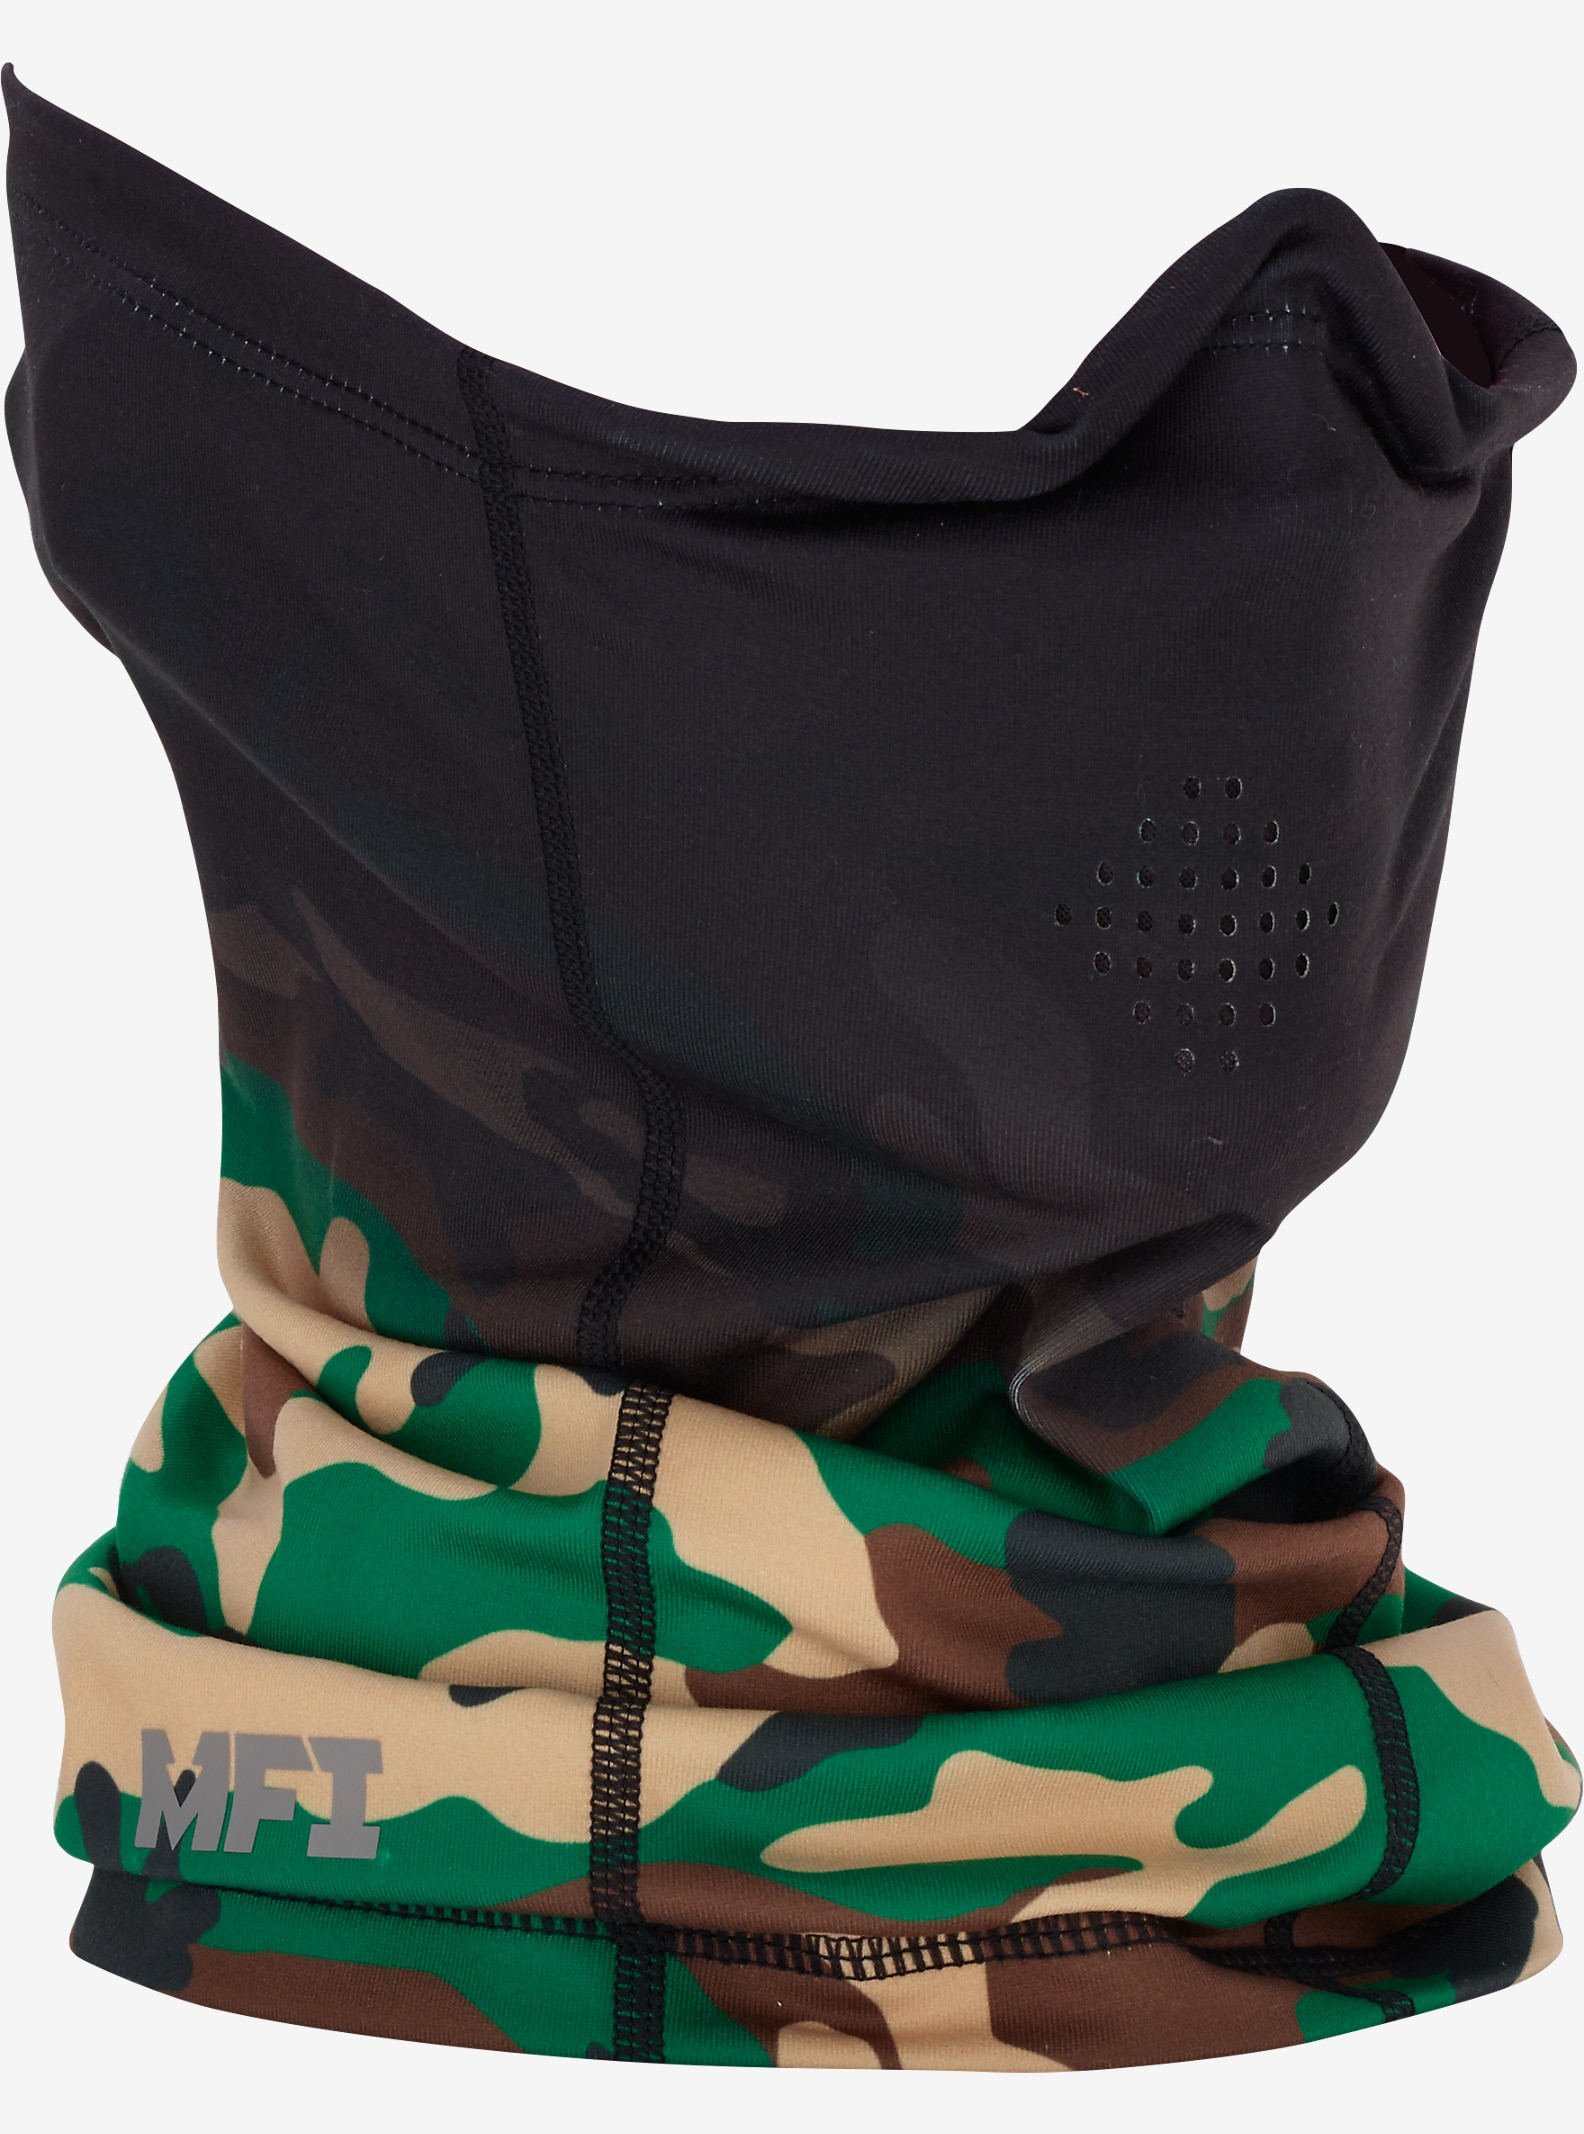 anon. MFI Mid-Weight Neck Warmer shown in Guerrilla